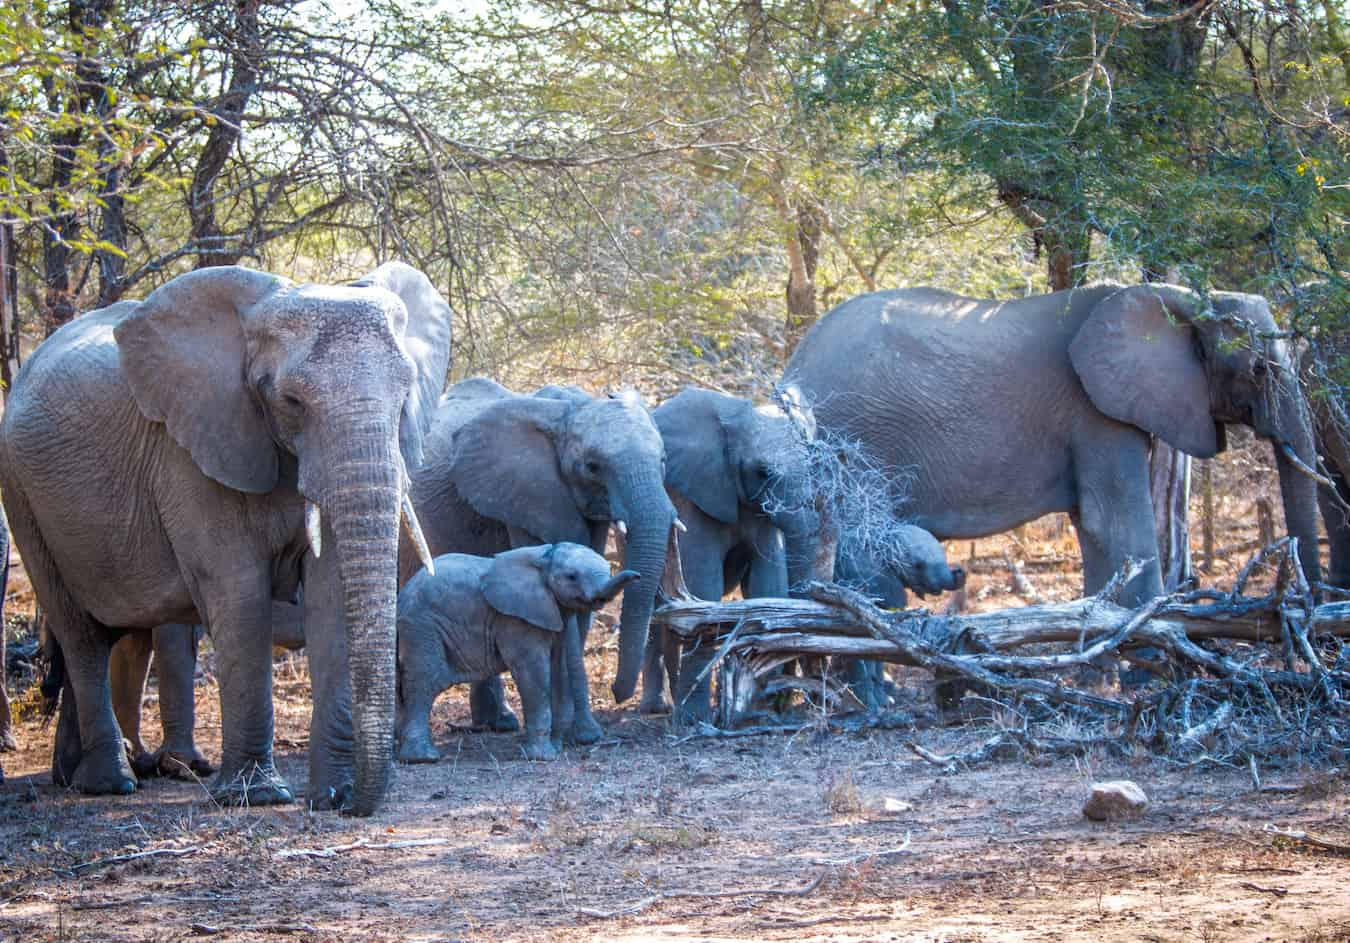 Facts About Elephants: African Elephants with Elephant Babies in Kruger National Park, South Africa